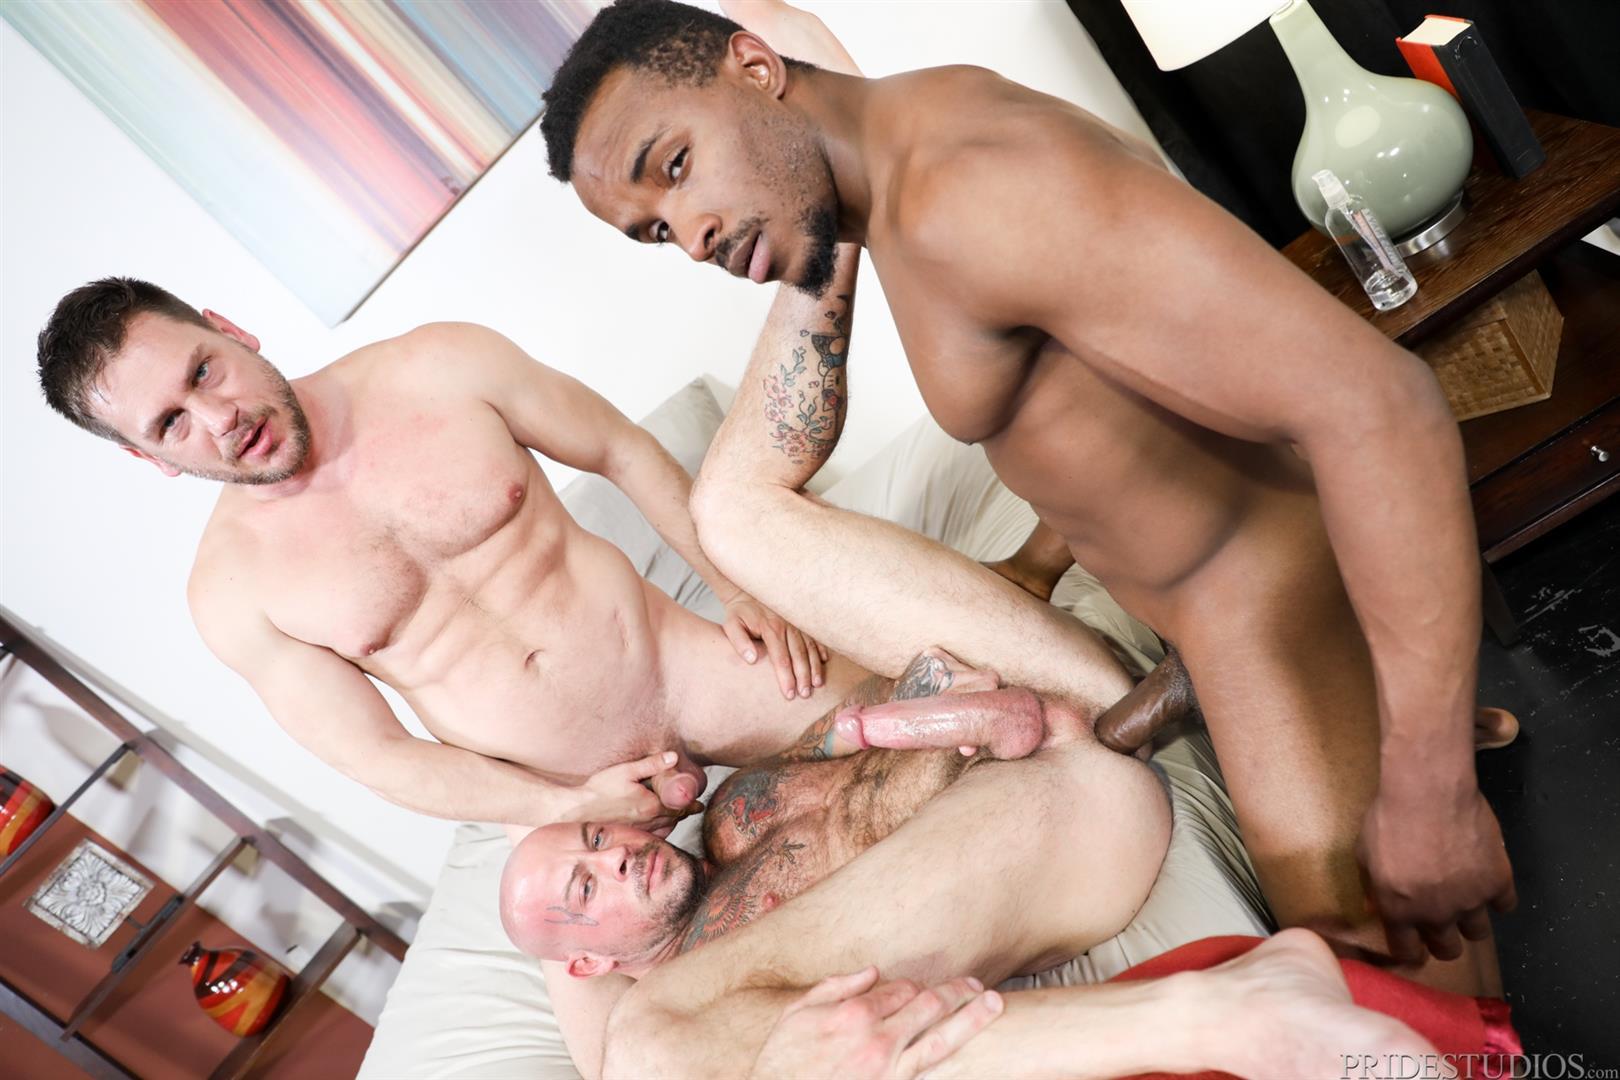 Extra-Big-Dicks-Sean-Duran-and-Hans-Berlin-and-Pheonix-Fellington-Interracial-Bareback-08 Muscle Daddies Sean Duran and Hans Berlin Share Pheonix Fellington's Big Black Cock